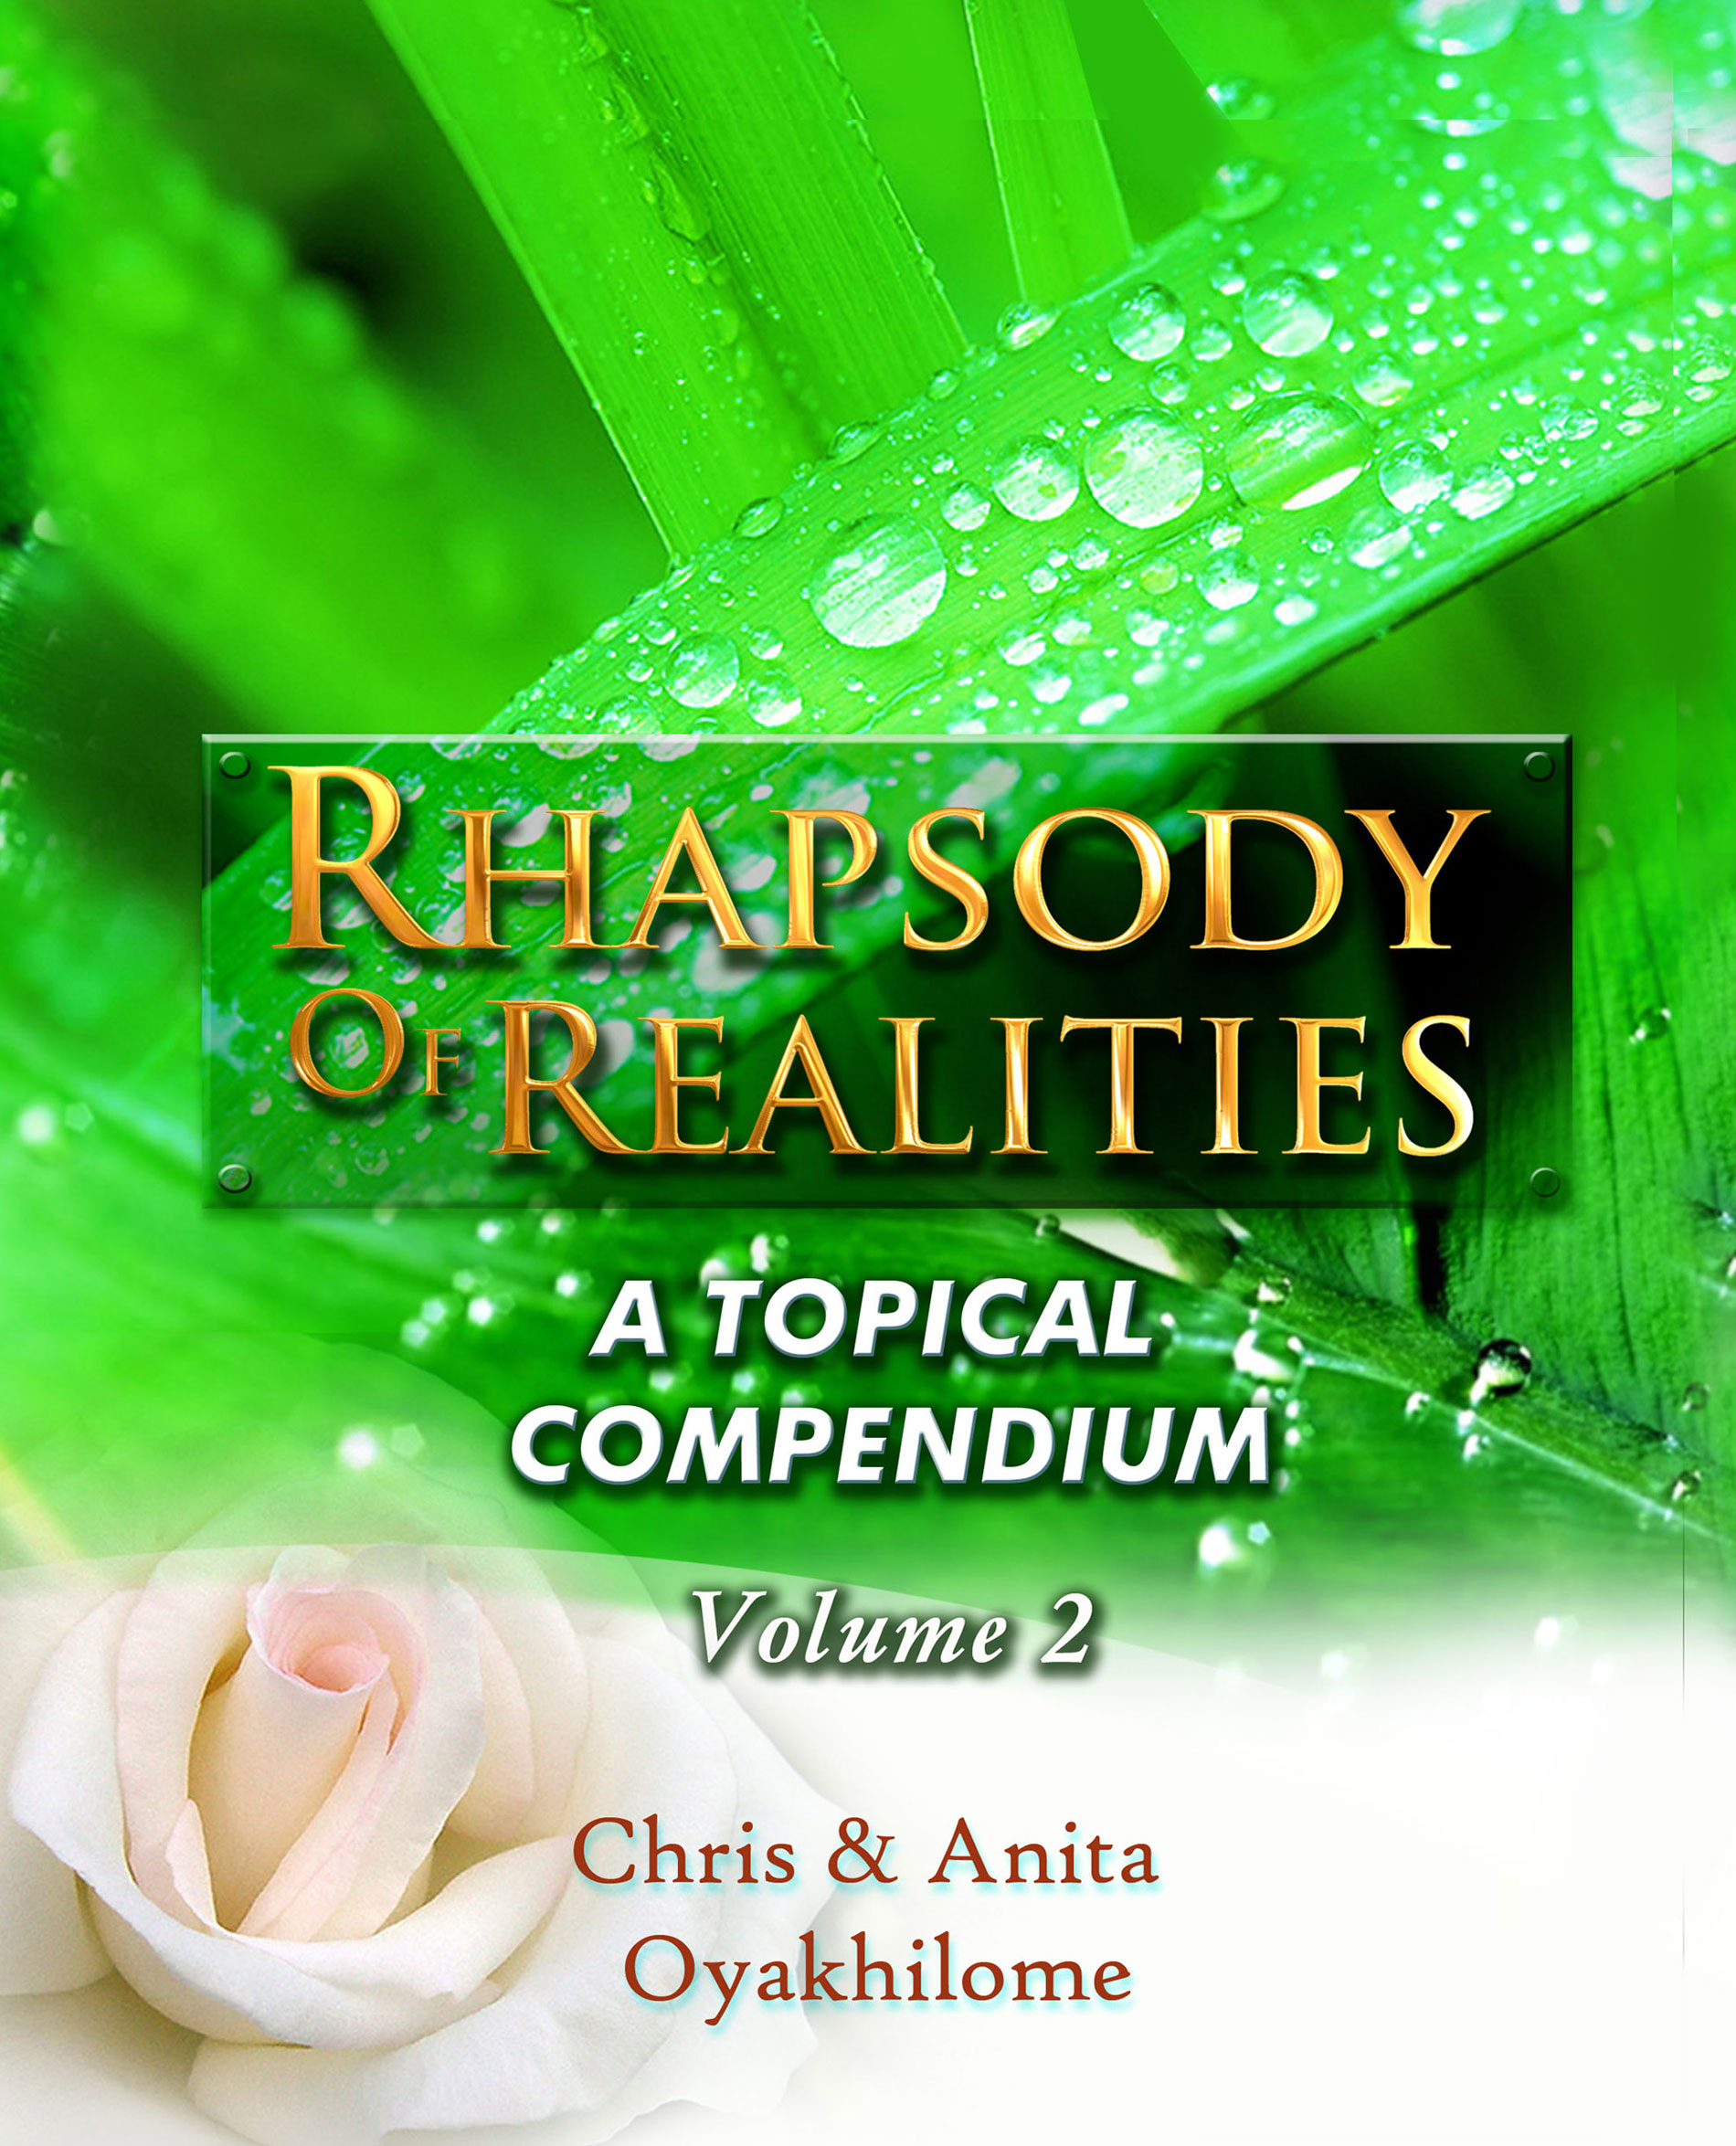 Pastor Chris and Anita Oyakhilome - Rhapsody of Realities Topical Compendium volume 2